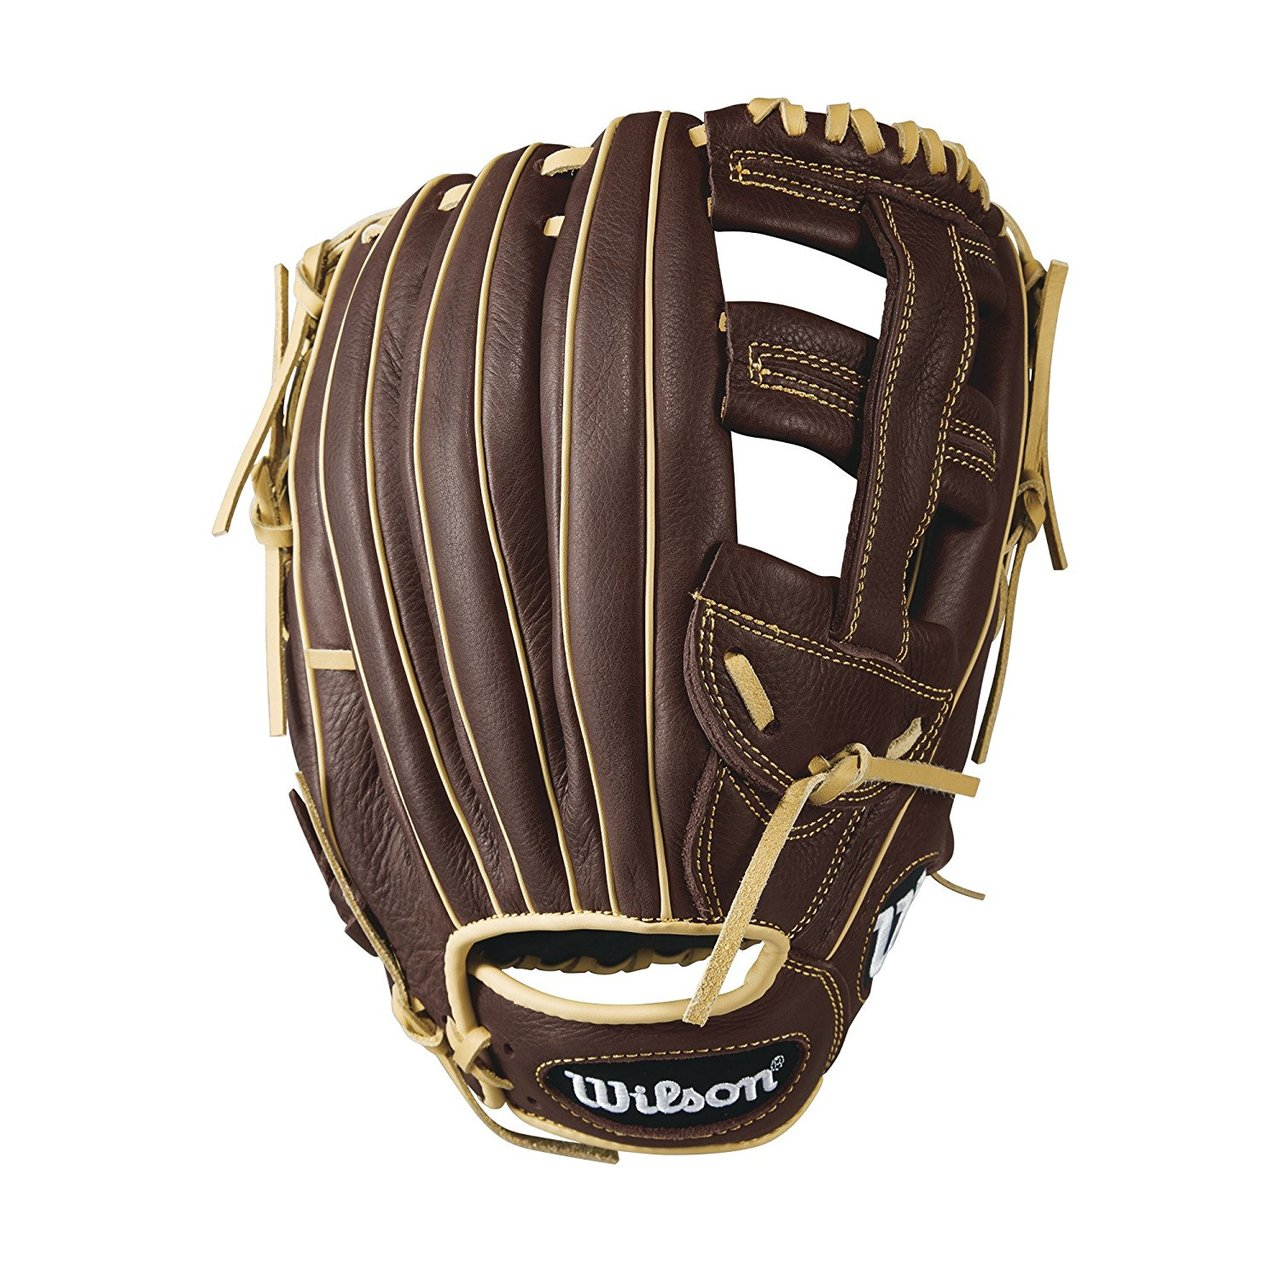 wilson-showtime-slowpitch-glove-softball-glove-13-right-hand-throw A08RS1713-RightHandThrow  887768498788 Single post web Double palm construction to reinforce the pocket Full